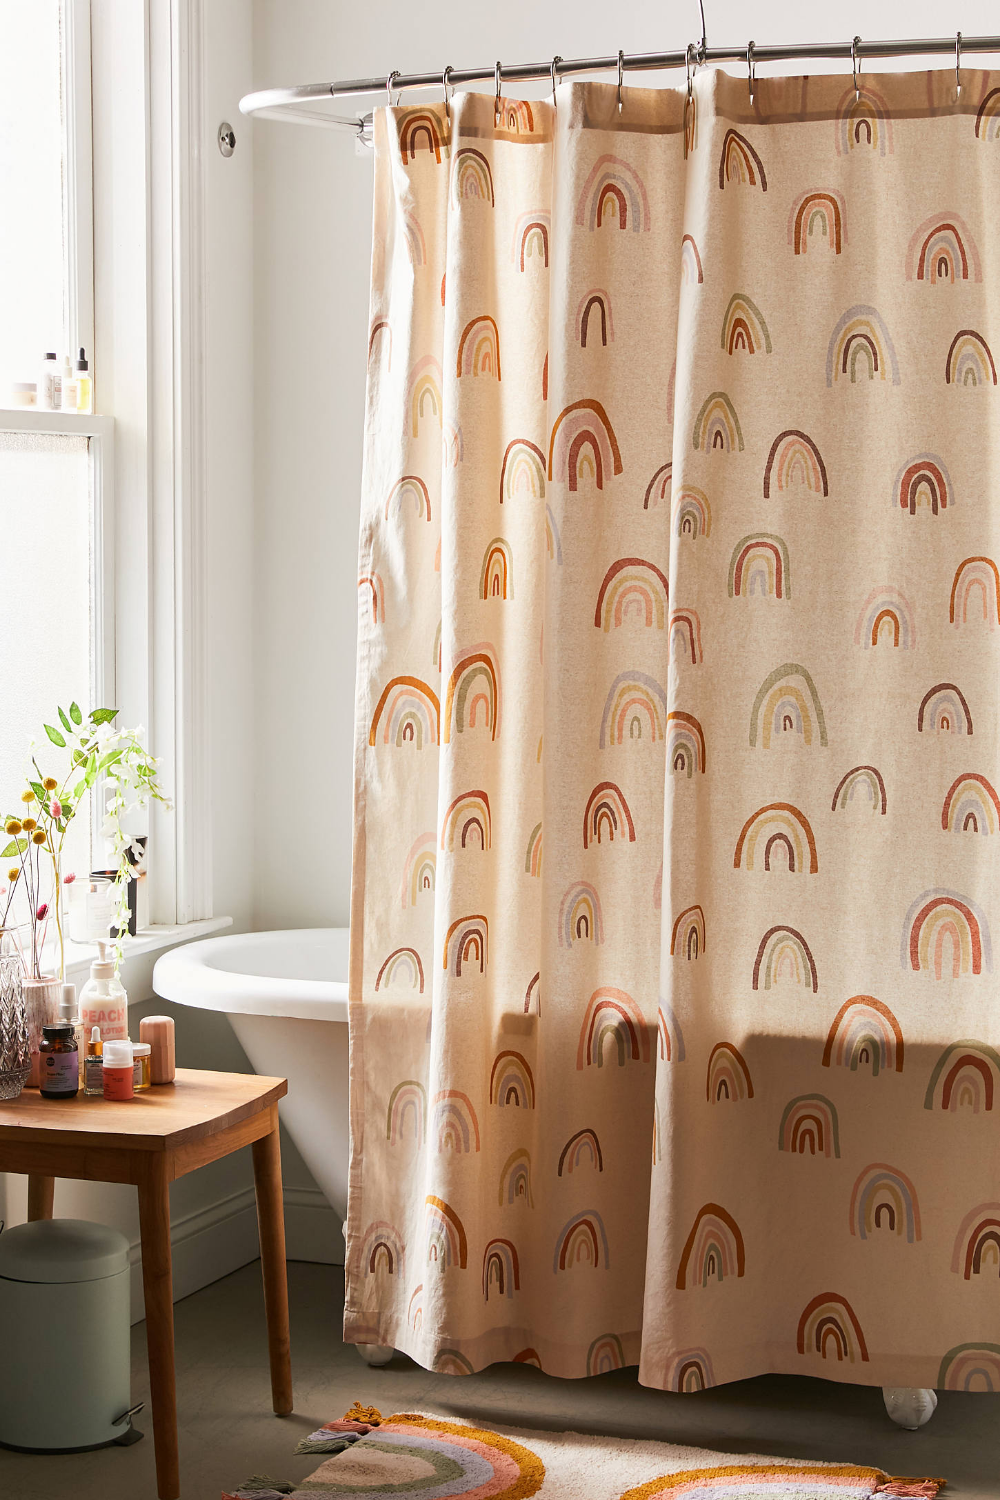 Painterly Rainbows Shower Curtain Urban Outfitters In 2020